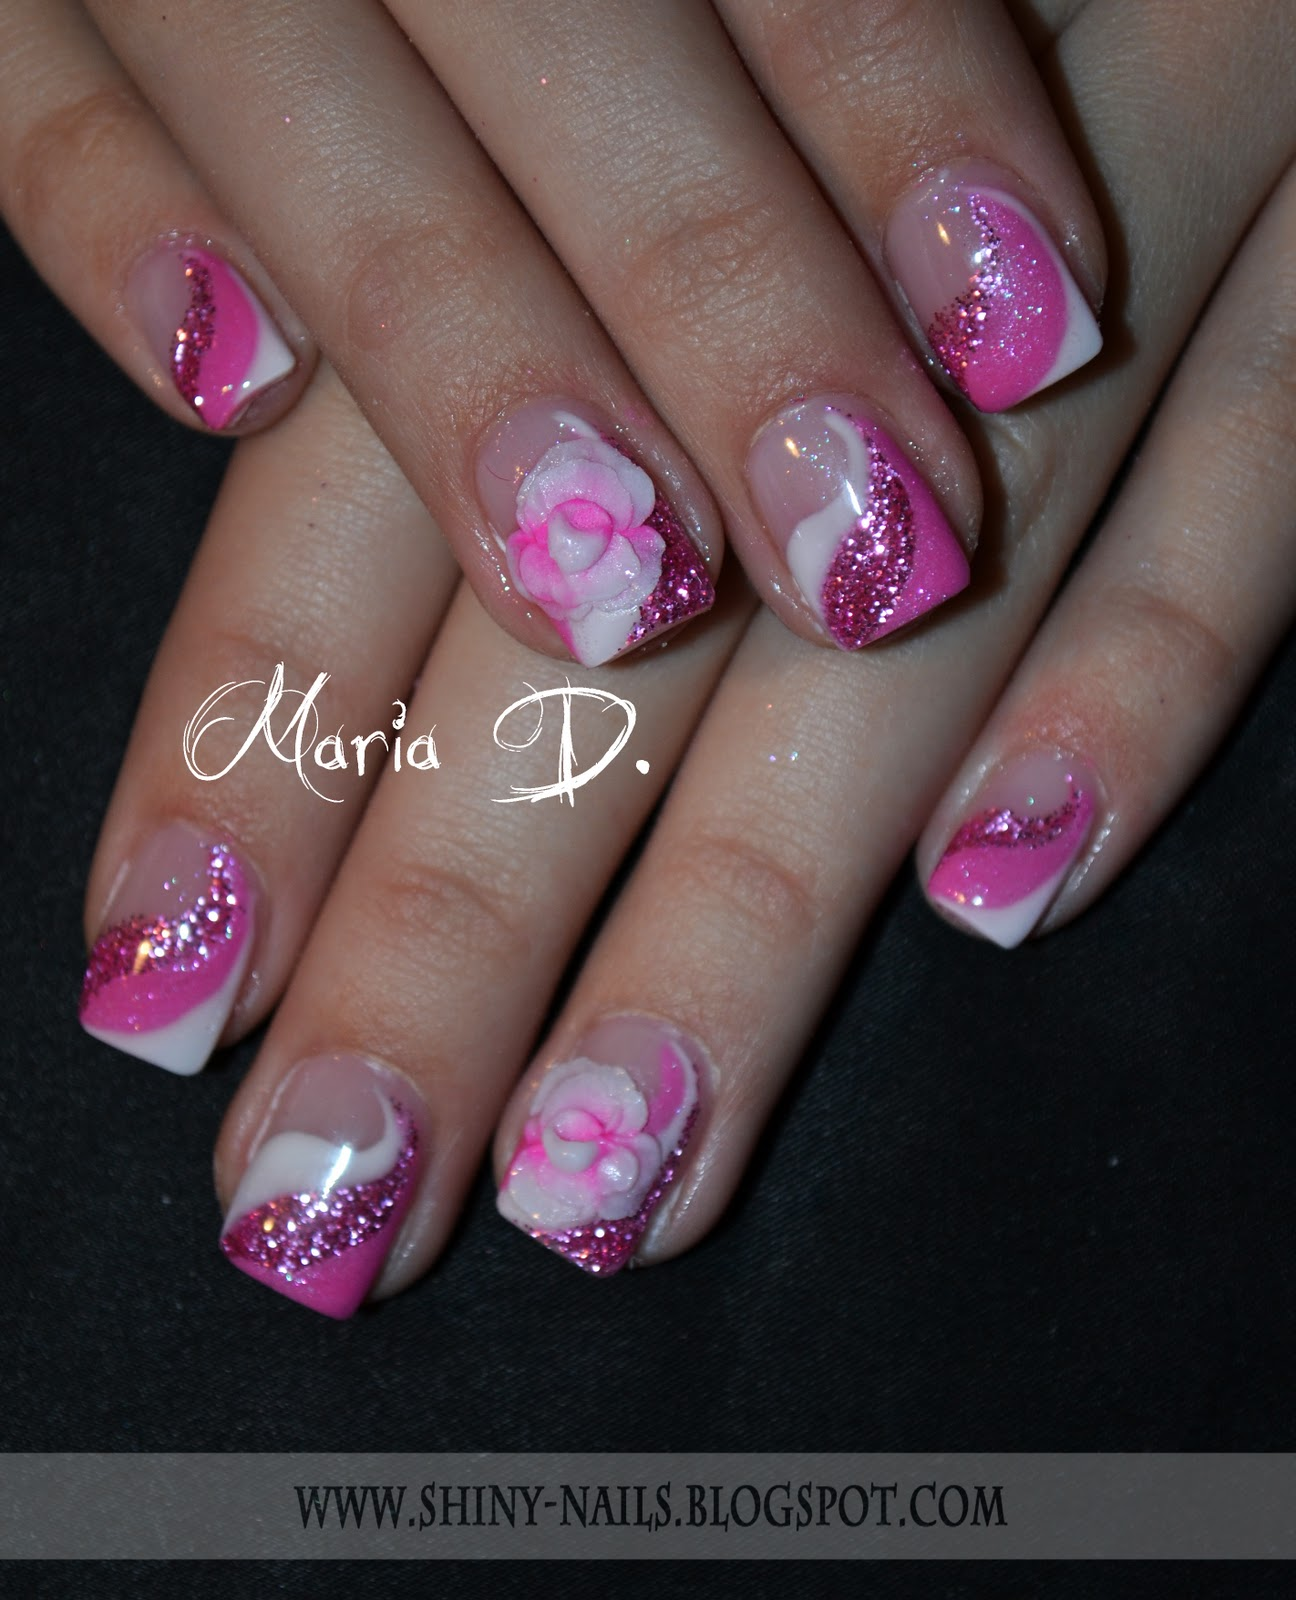 Gel nail protection - Design made of color gels - white, metallic pink